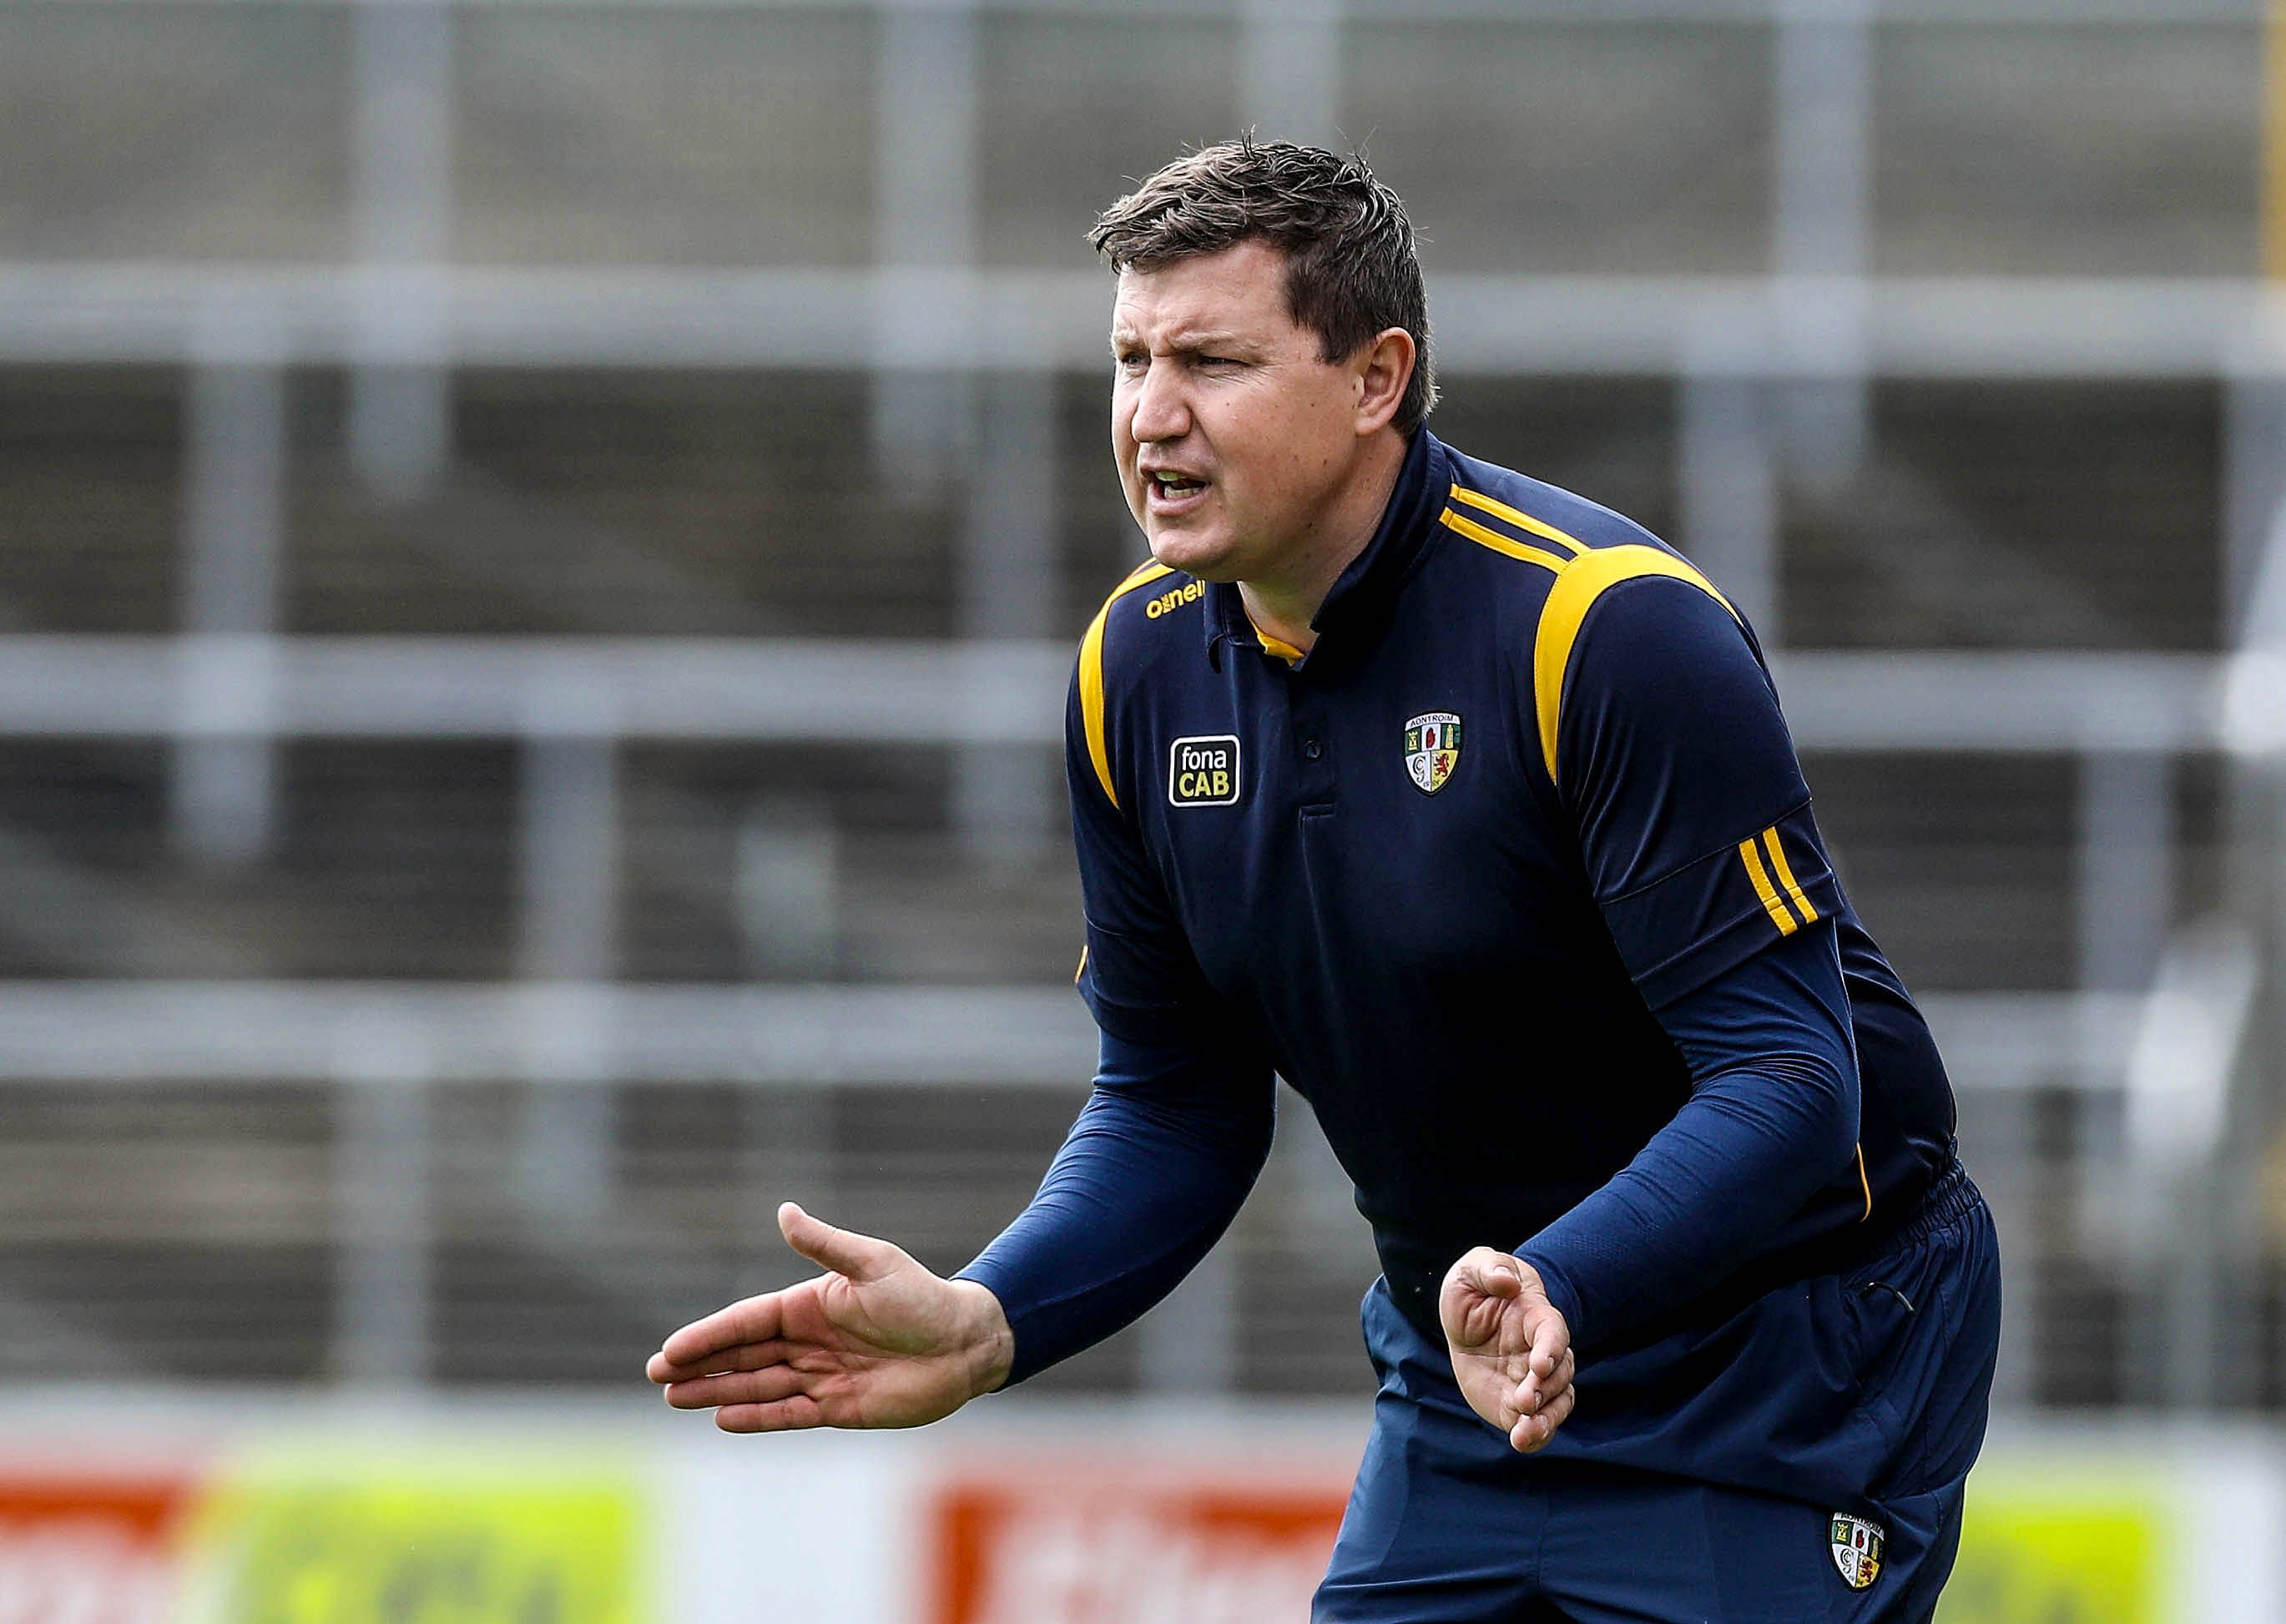 Antrim manager Darren Gleeson says he is delighted with the response of the players following their defeat to Dublin a fortnight ago